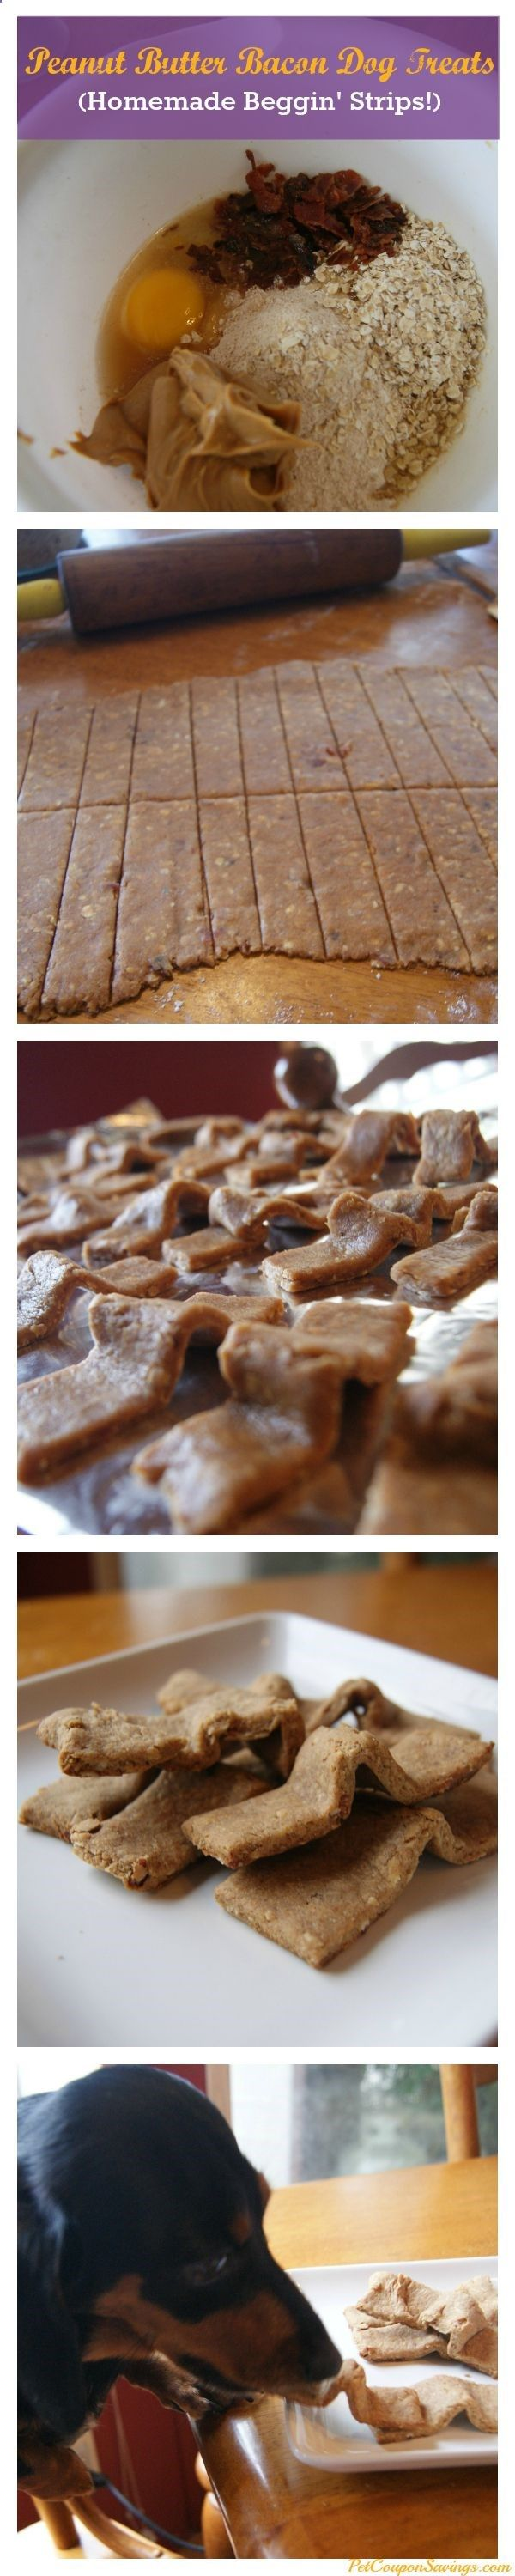 Homemade Peanut Butter Bacon Dog Treats (Homemade Beggin Strips!) This homemade version has REAL bacon in them. Dogs love it! #homemade #dogs #diy